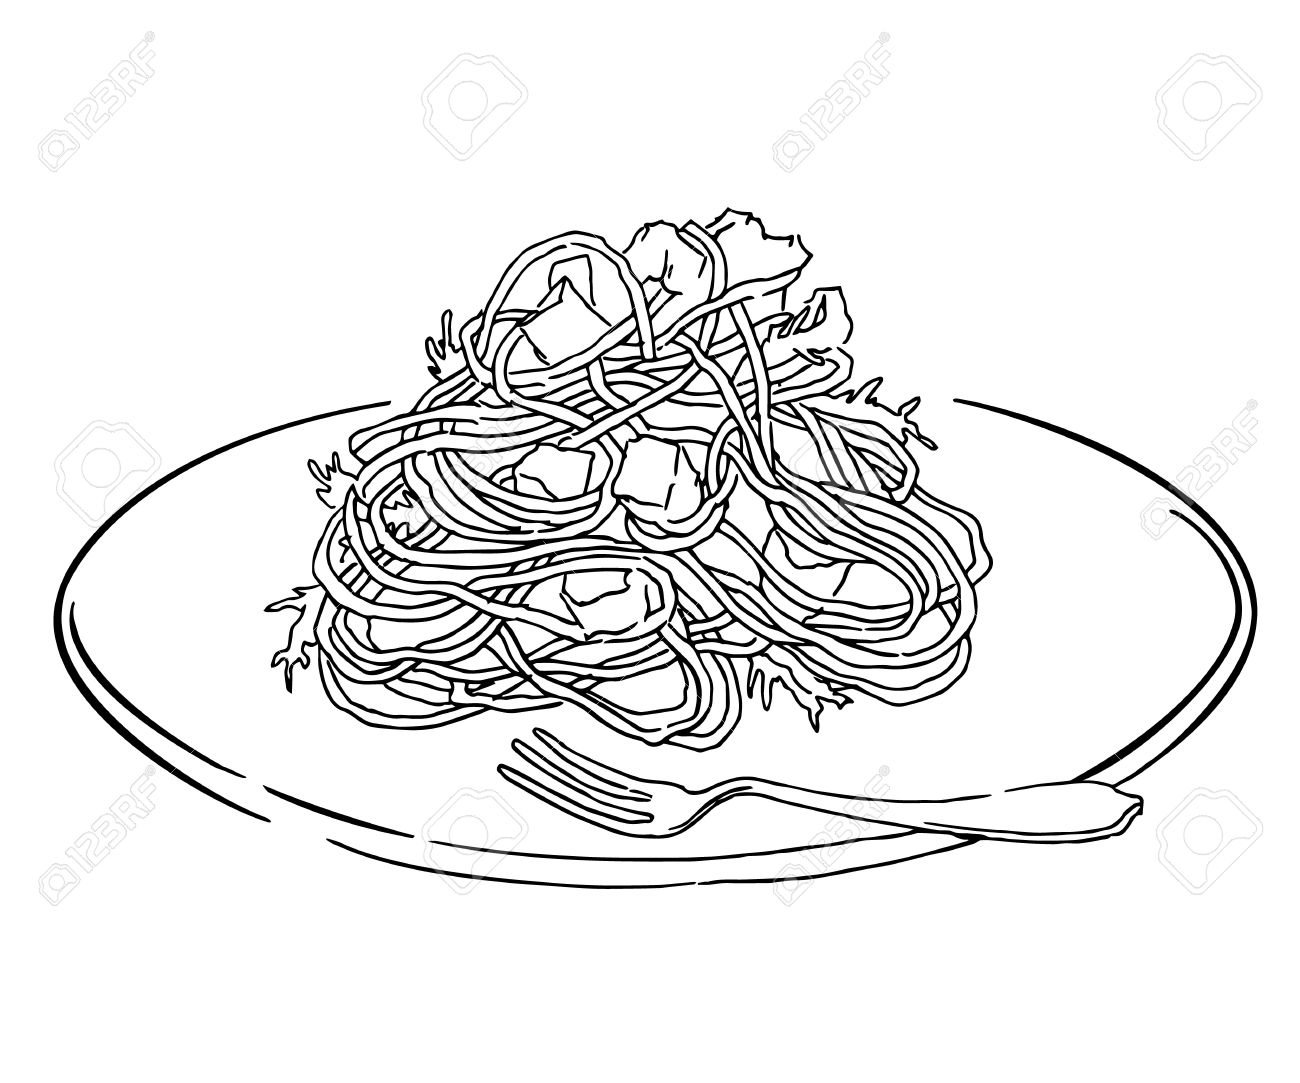 Vector Sketch Of Spaghetti Plate. Italian Food Draw. Isolated ... for Plate With Food Drawing  239wja